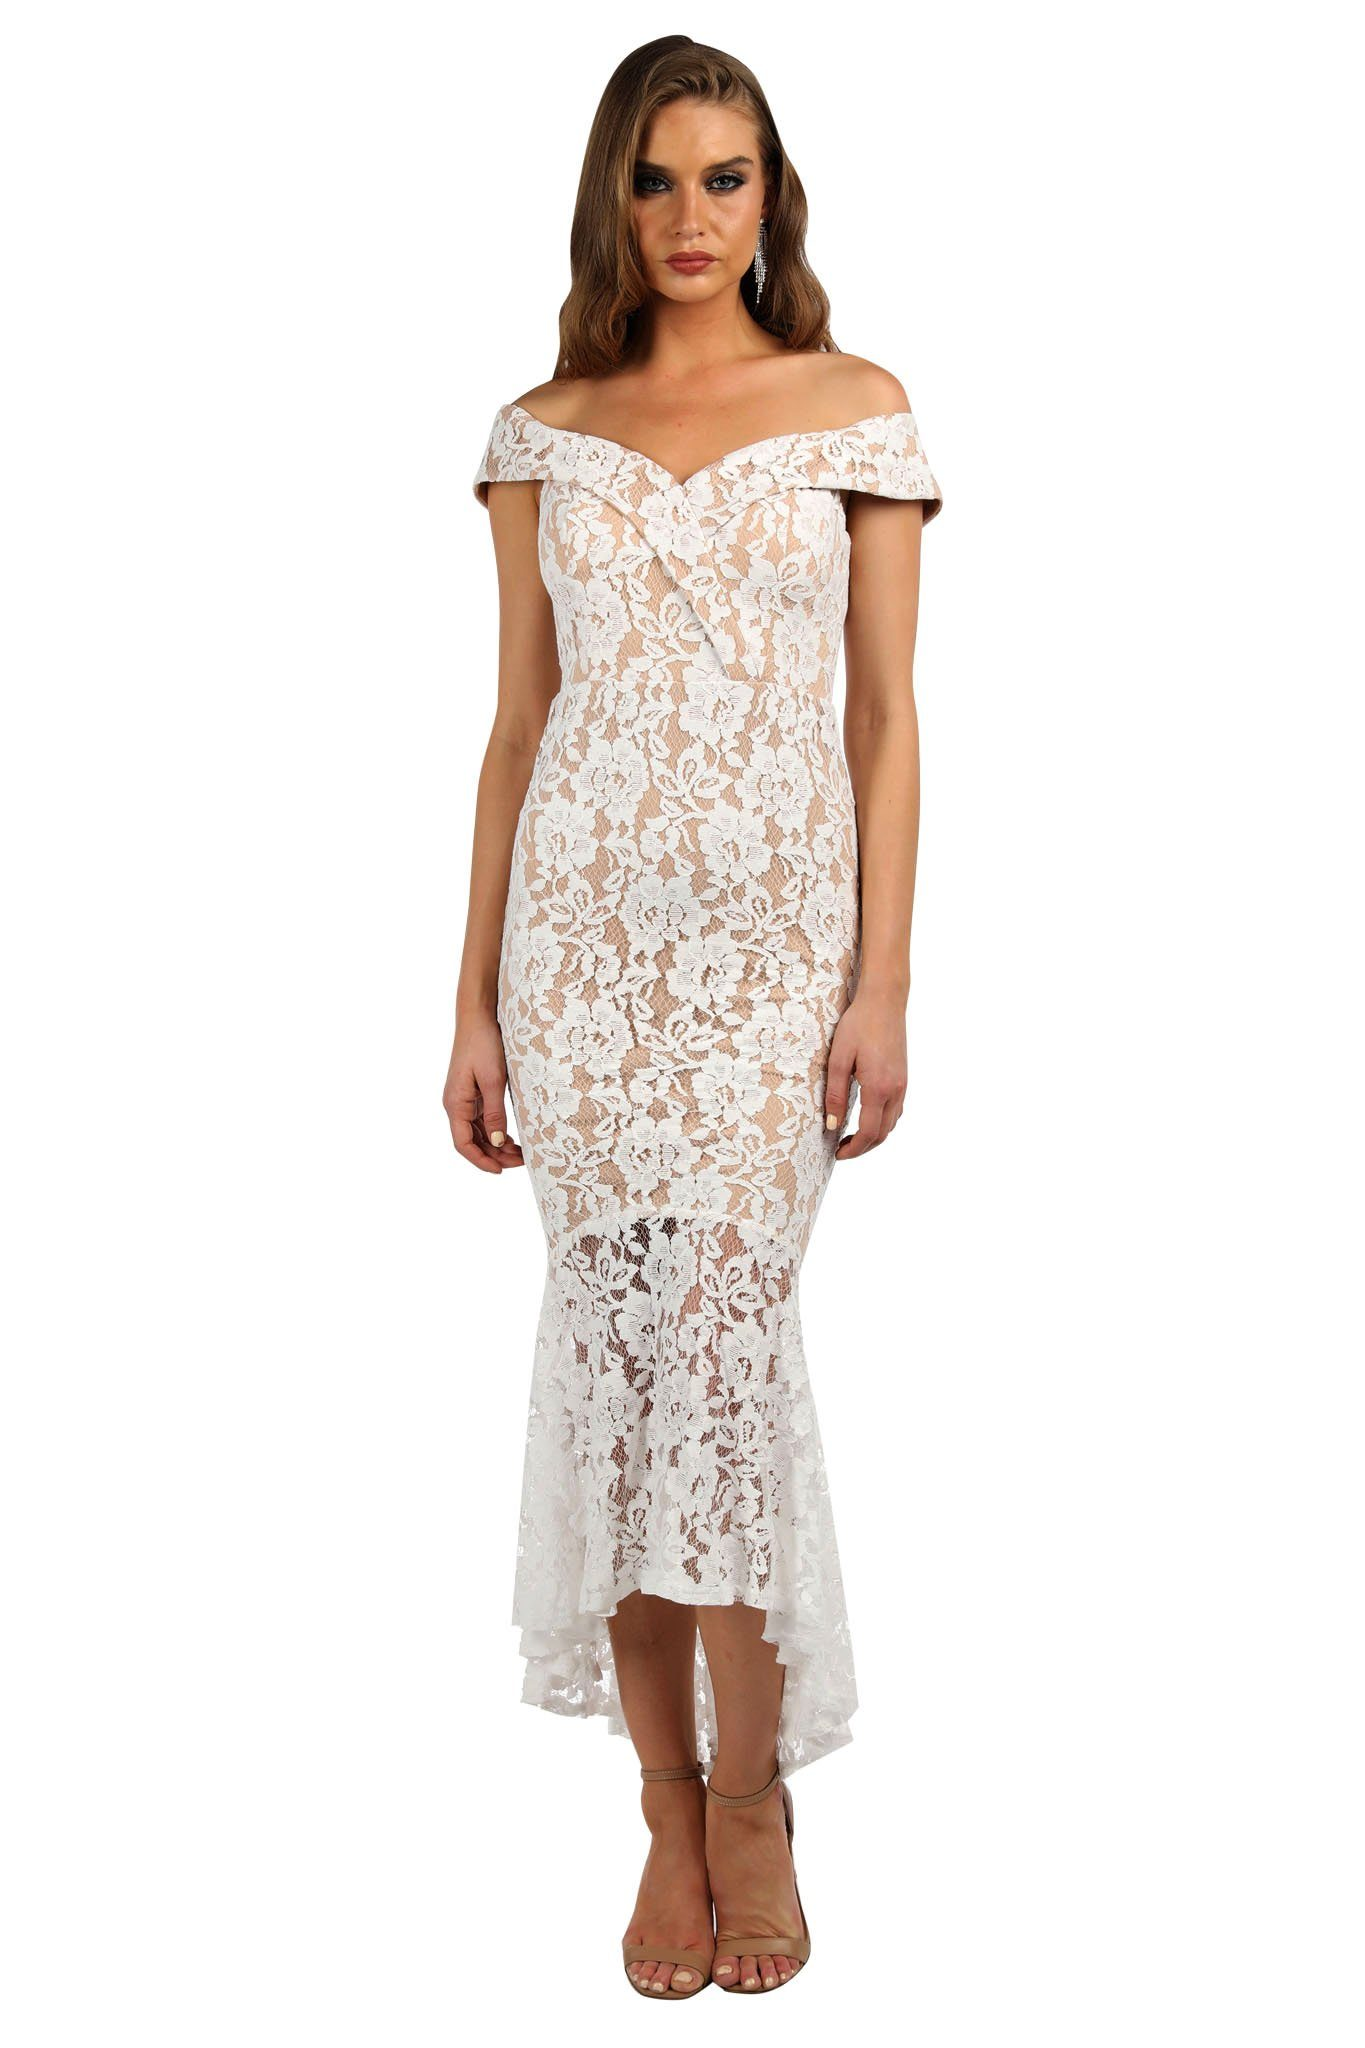 White lace dress with nude lining, off-shoulder neckline with cap sleeves, sweetheart neckline, fitted bodice and high low peplum hem skirt